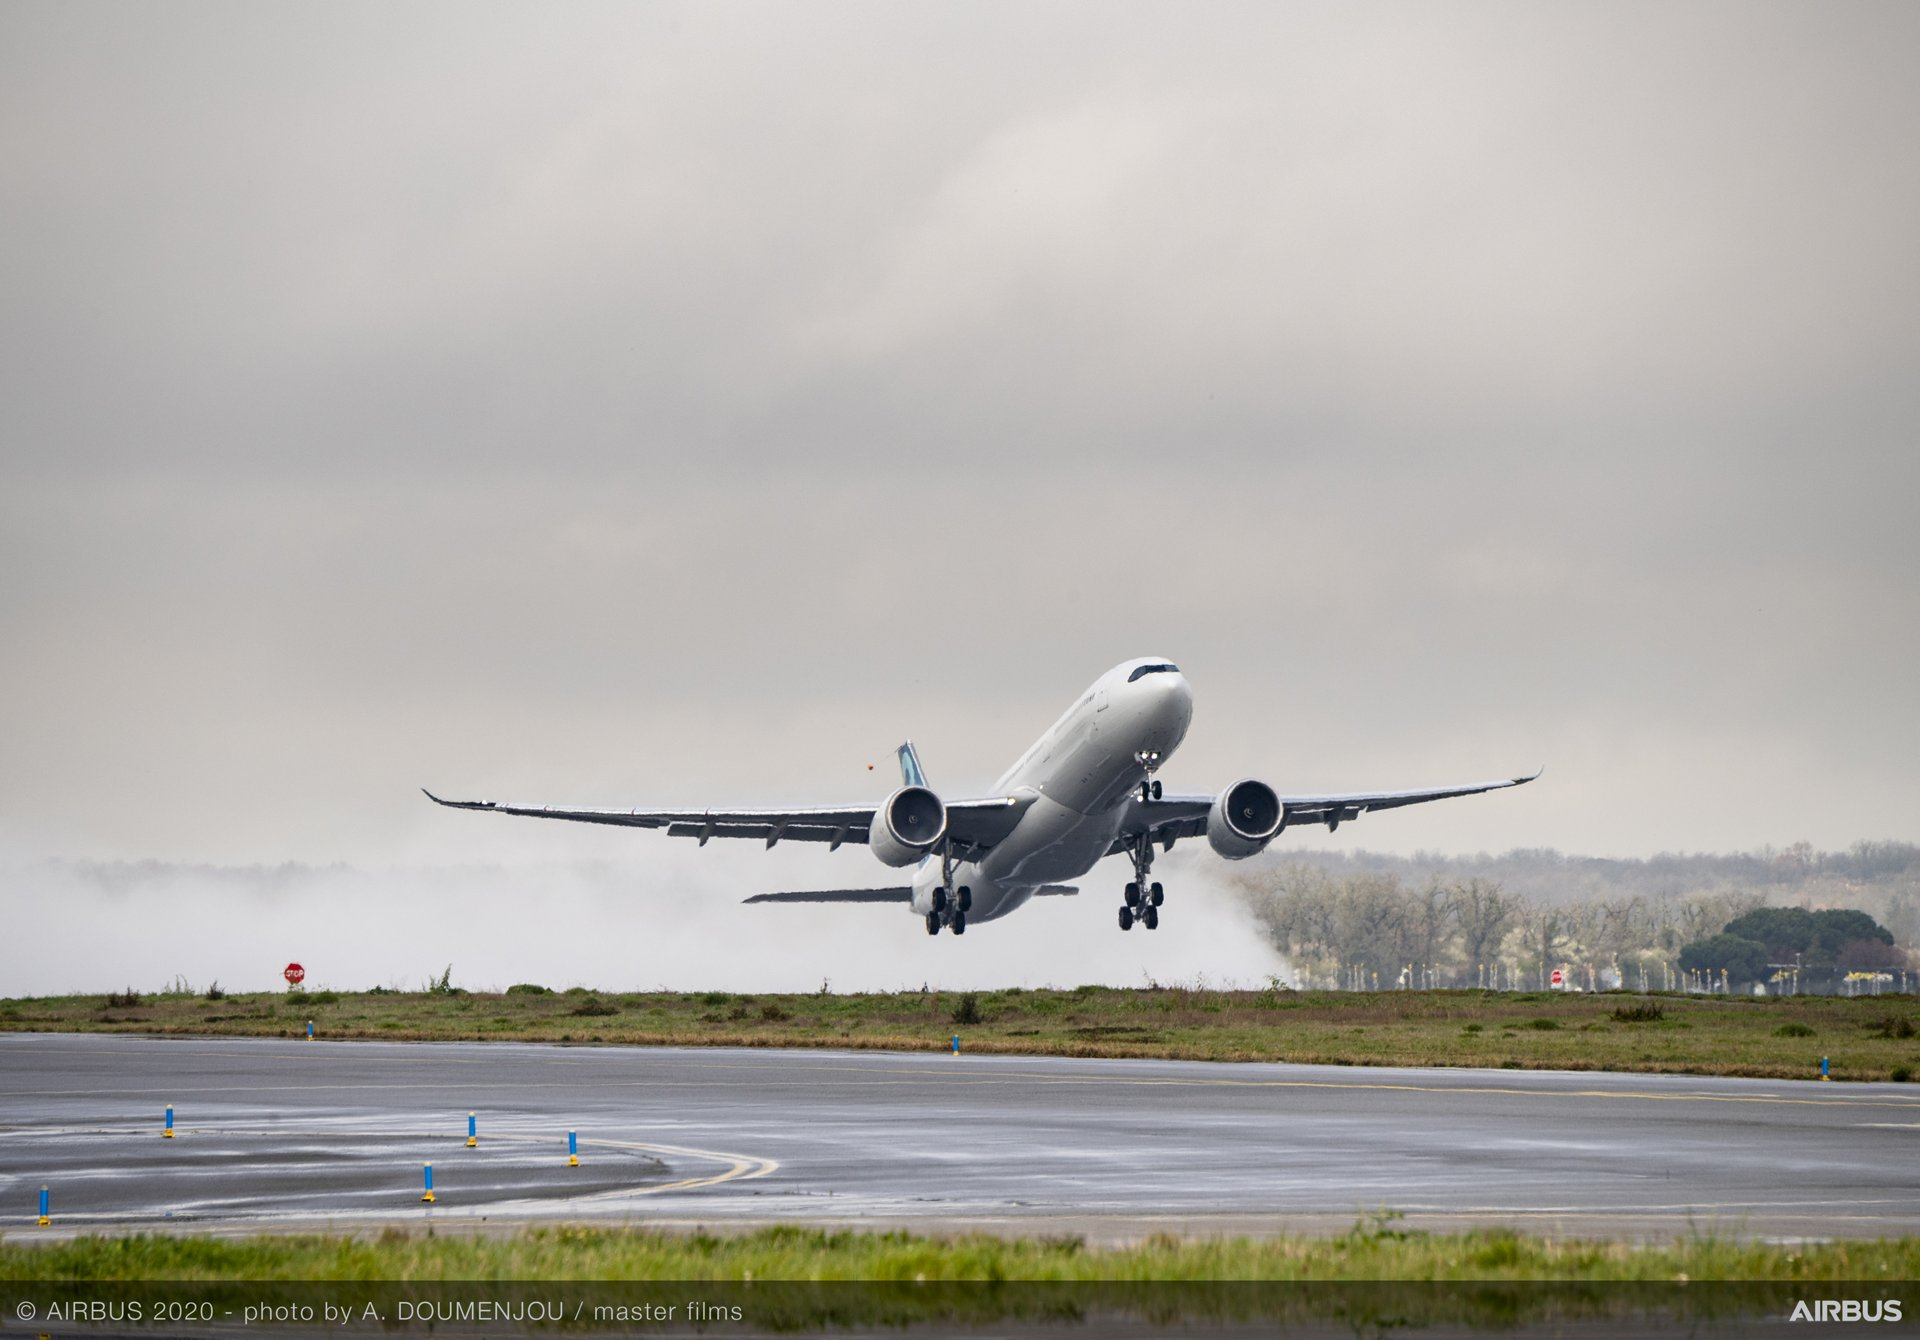 Airbus' new A330-900 increased take-off weight variant accelerates down the runway at Toulouse-Blagnac Airport before lifting off on its maiden flight, performed 28 February